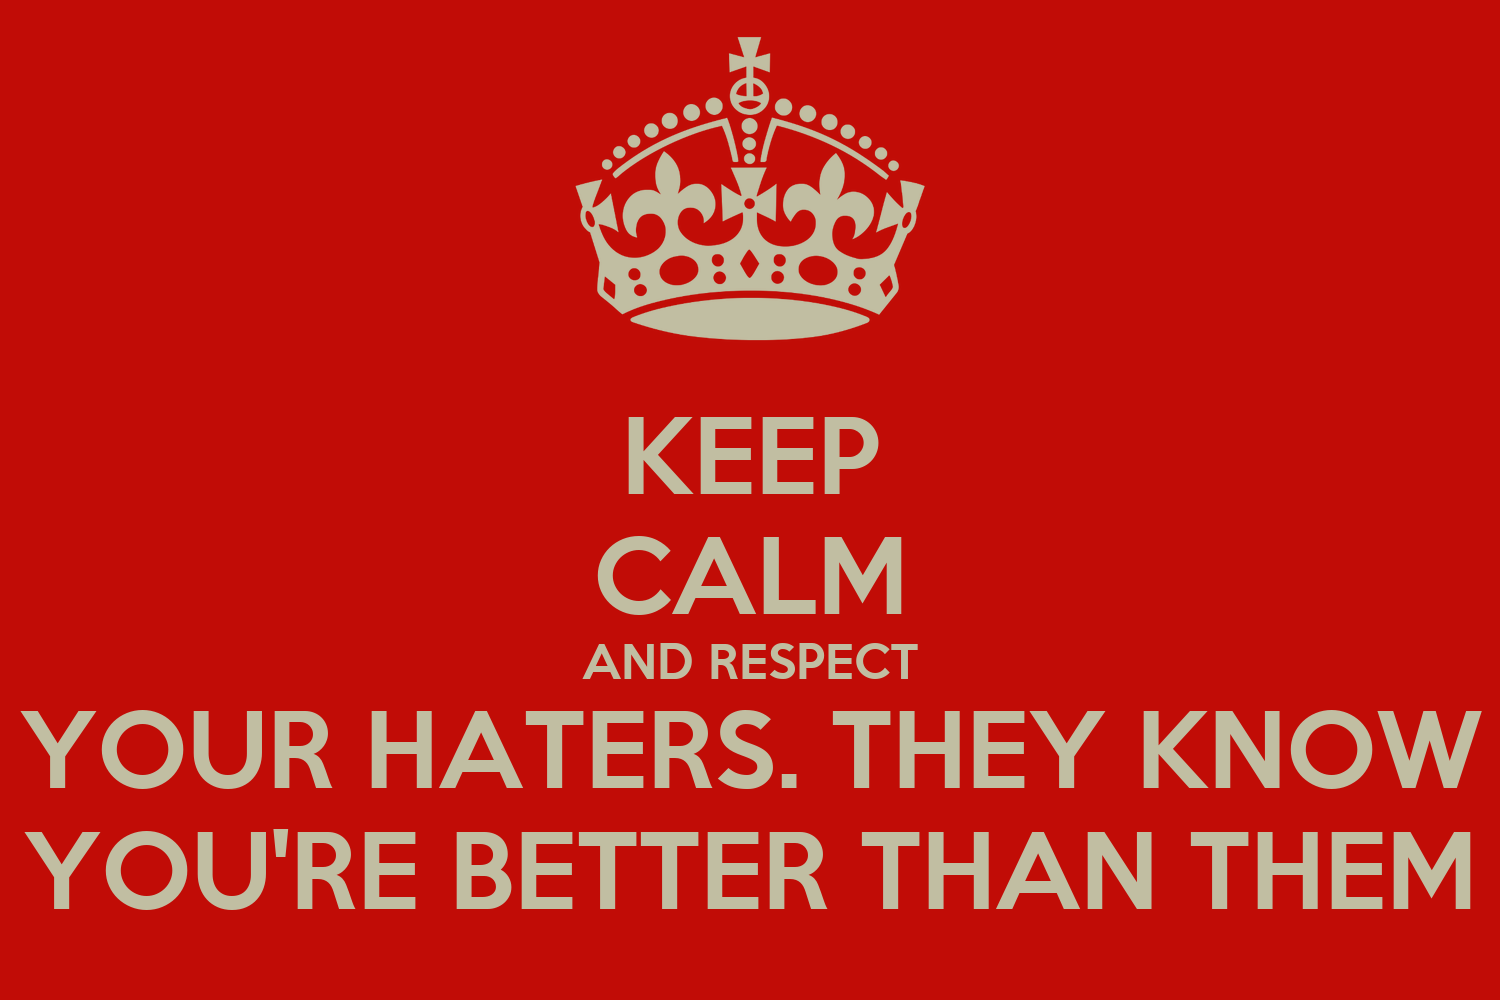 Keep Calm And Respect Your Haters They Know You Re Better Than Them Poster